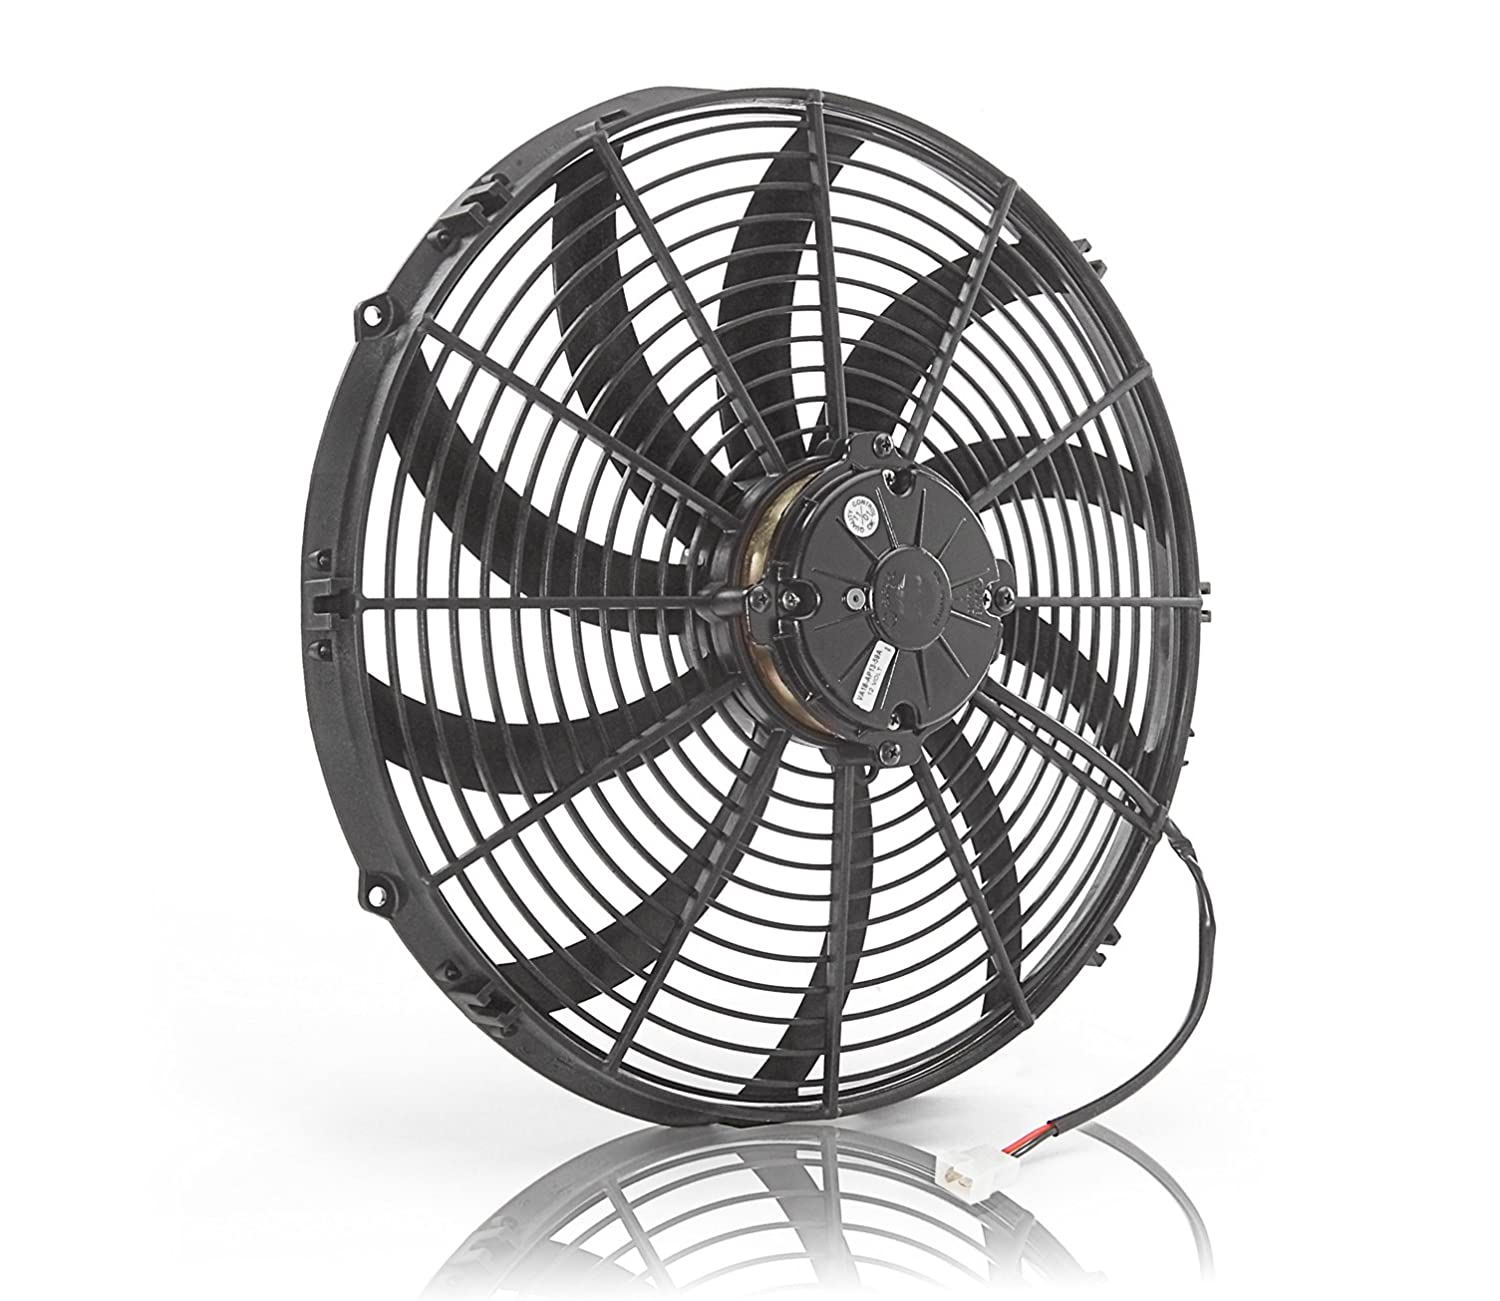 Be Cool 75047 Euro-Black 6.5' Thin Line Electric Puller Fan